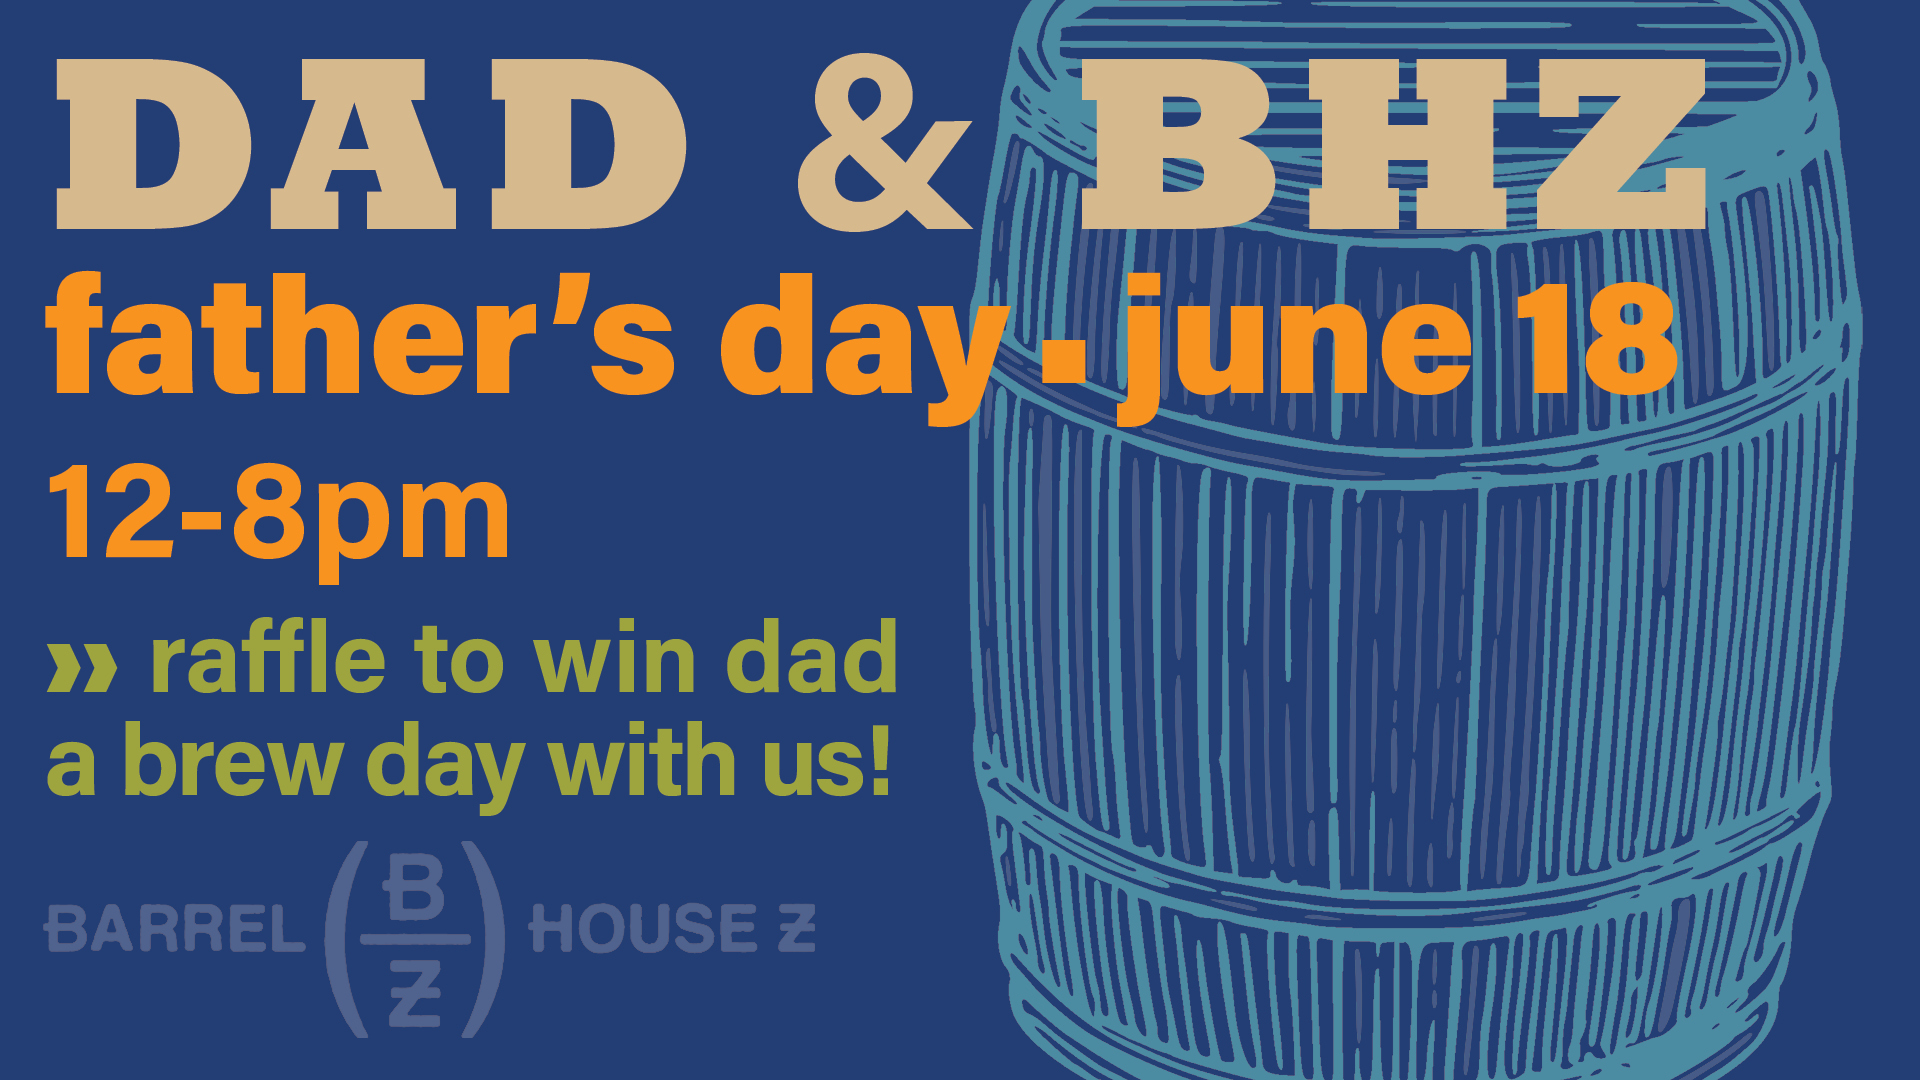 We're celebrating dad's big day the best way we know how: with craft beer, corn hole, and giant Jenga!  We're also doing a raffle to win dad a brew day with us. Got to be here to enter! Could be the best Father's Day gift you ever give or get!